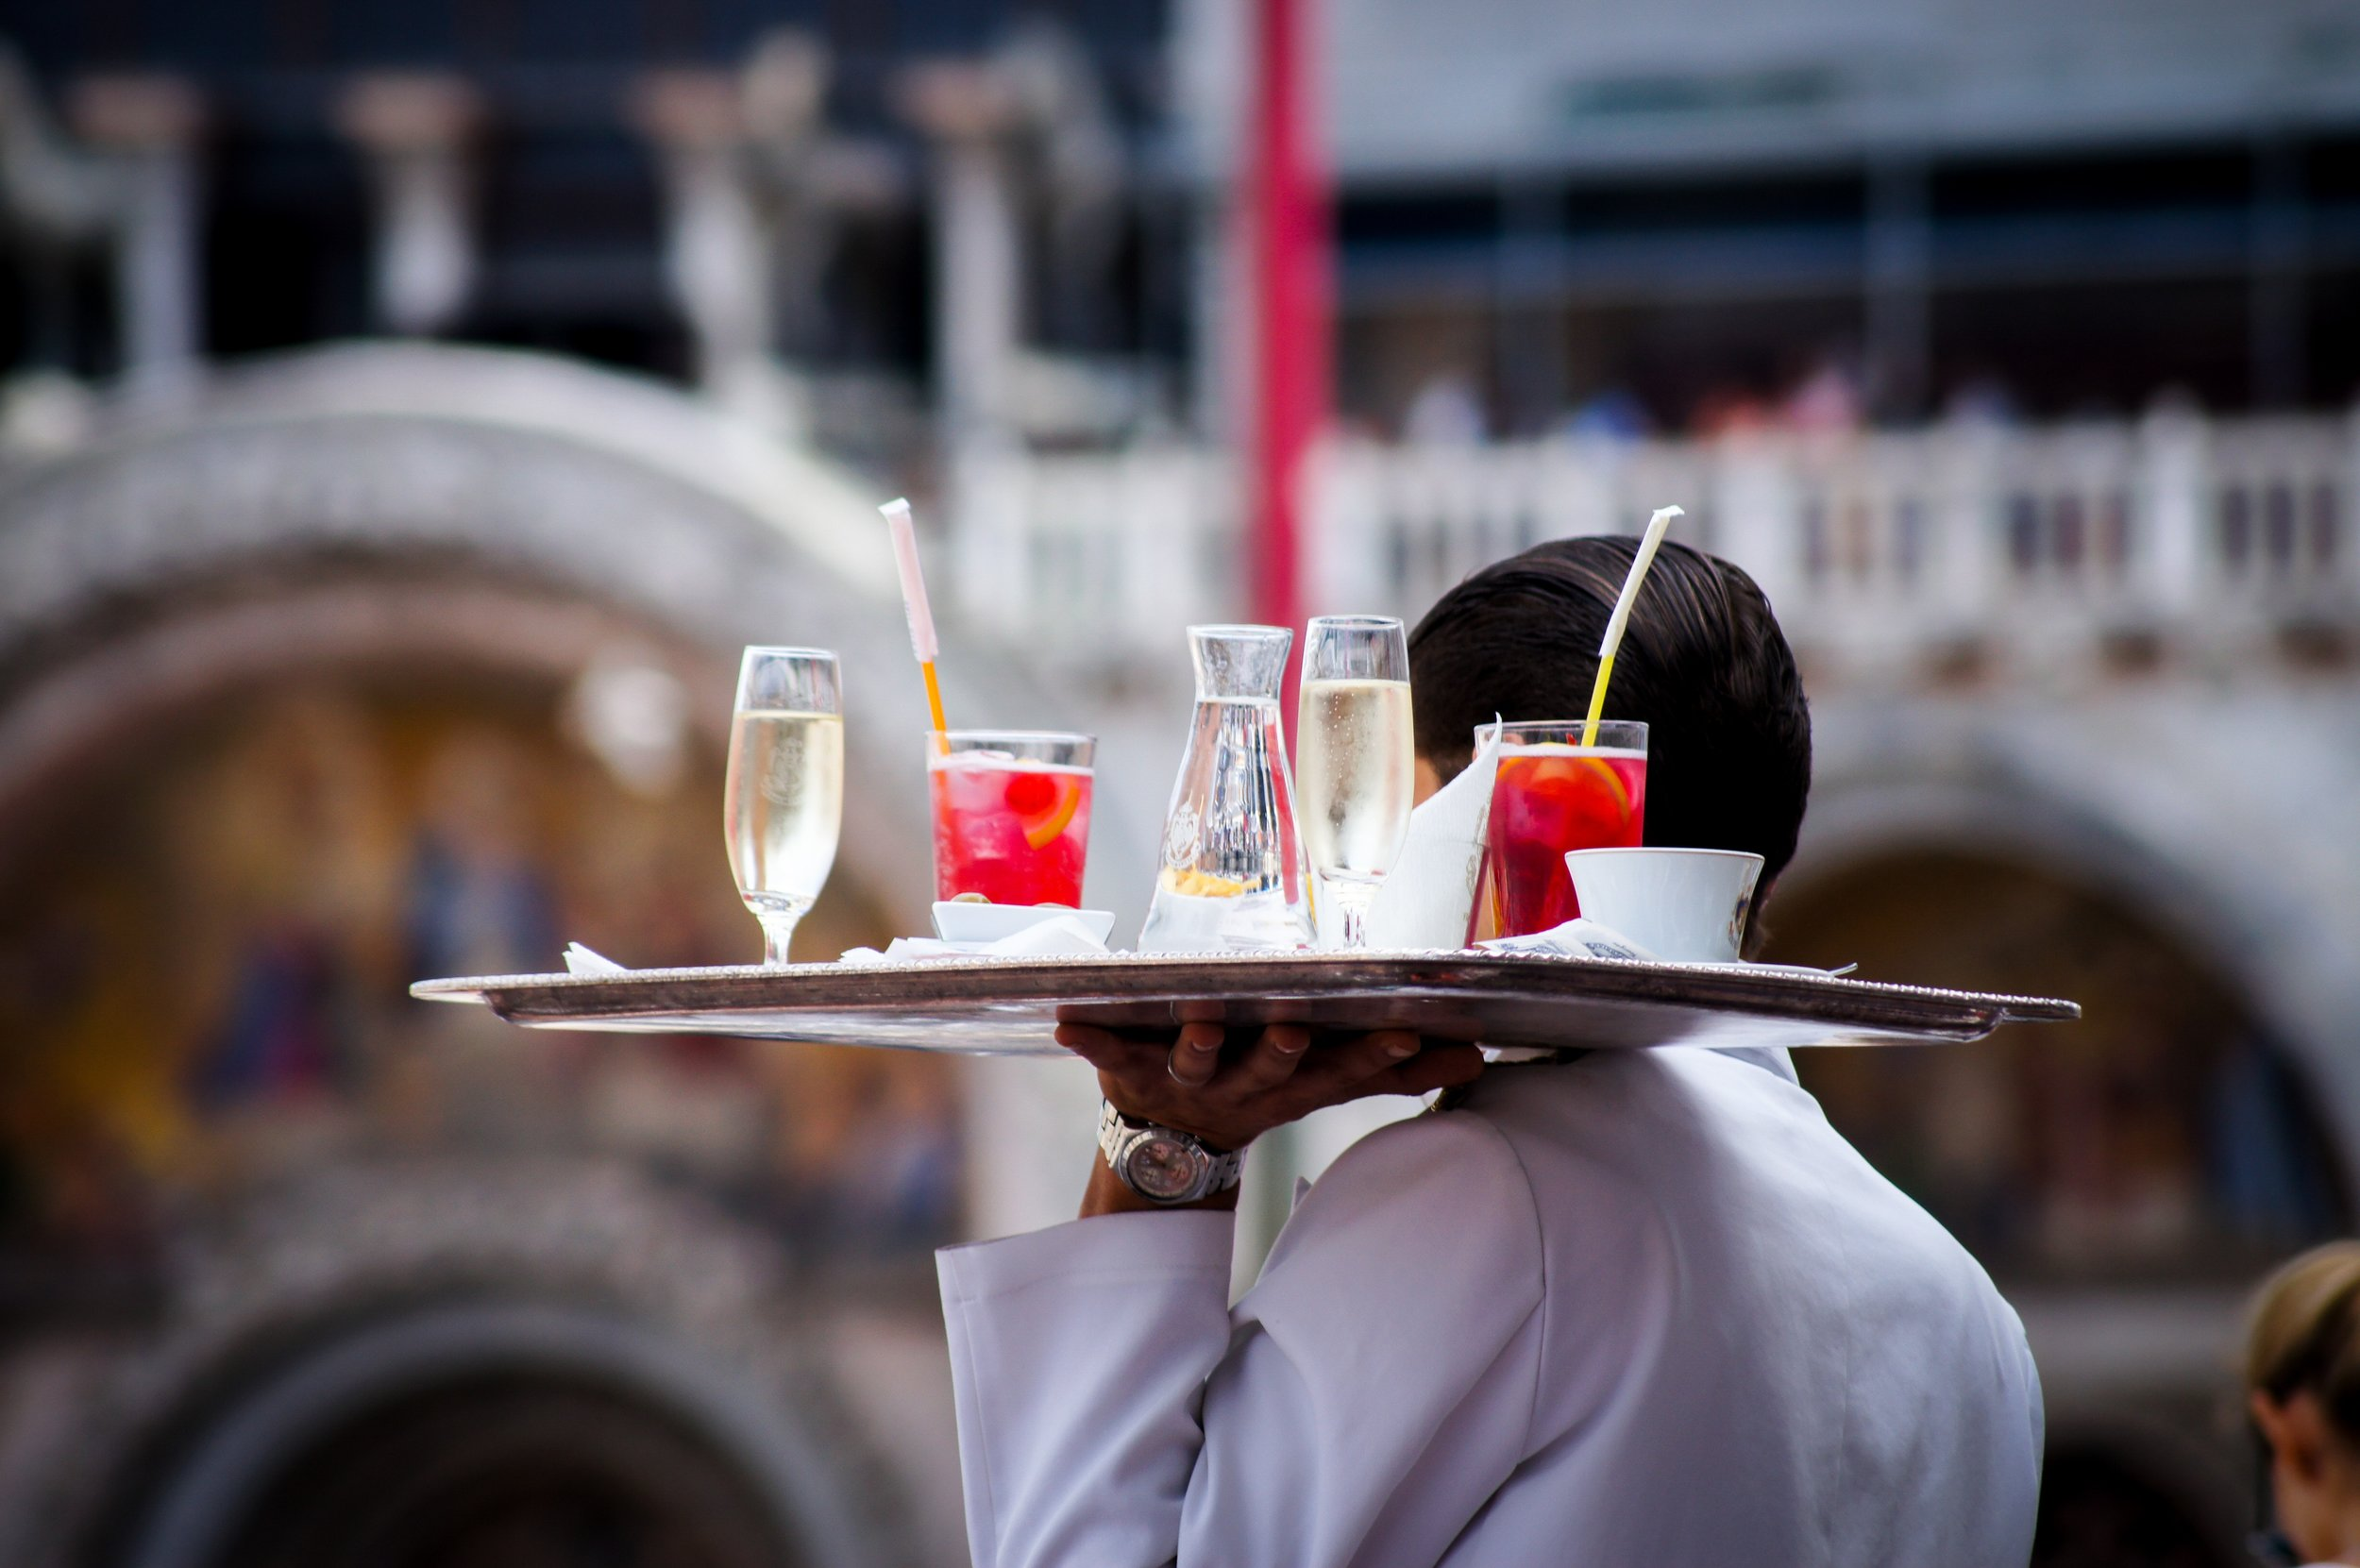 A waiter carrying a tray of drinks